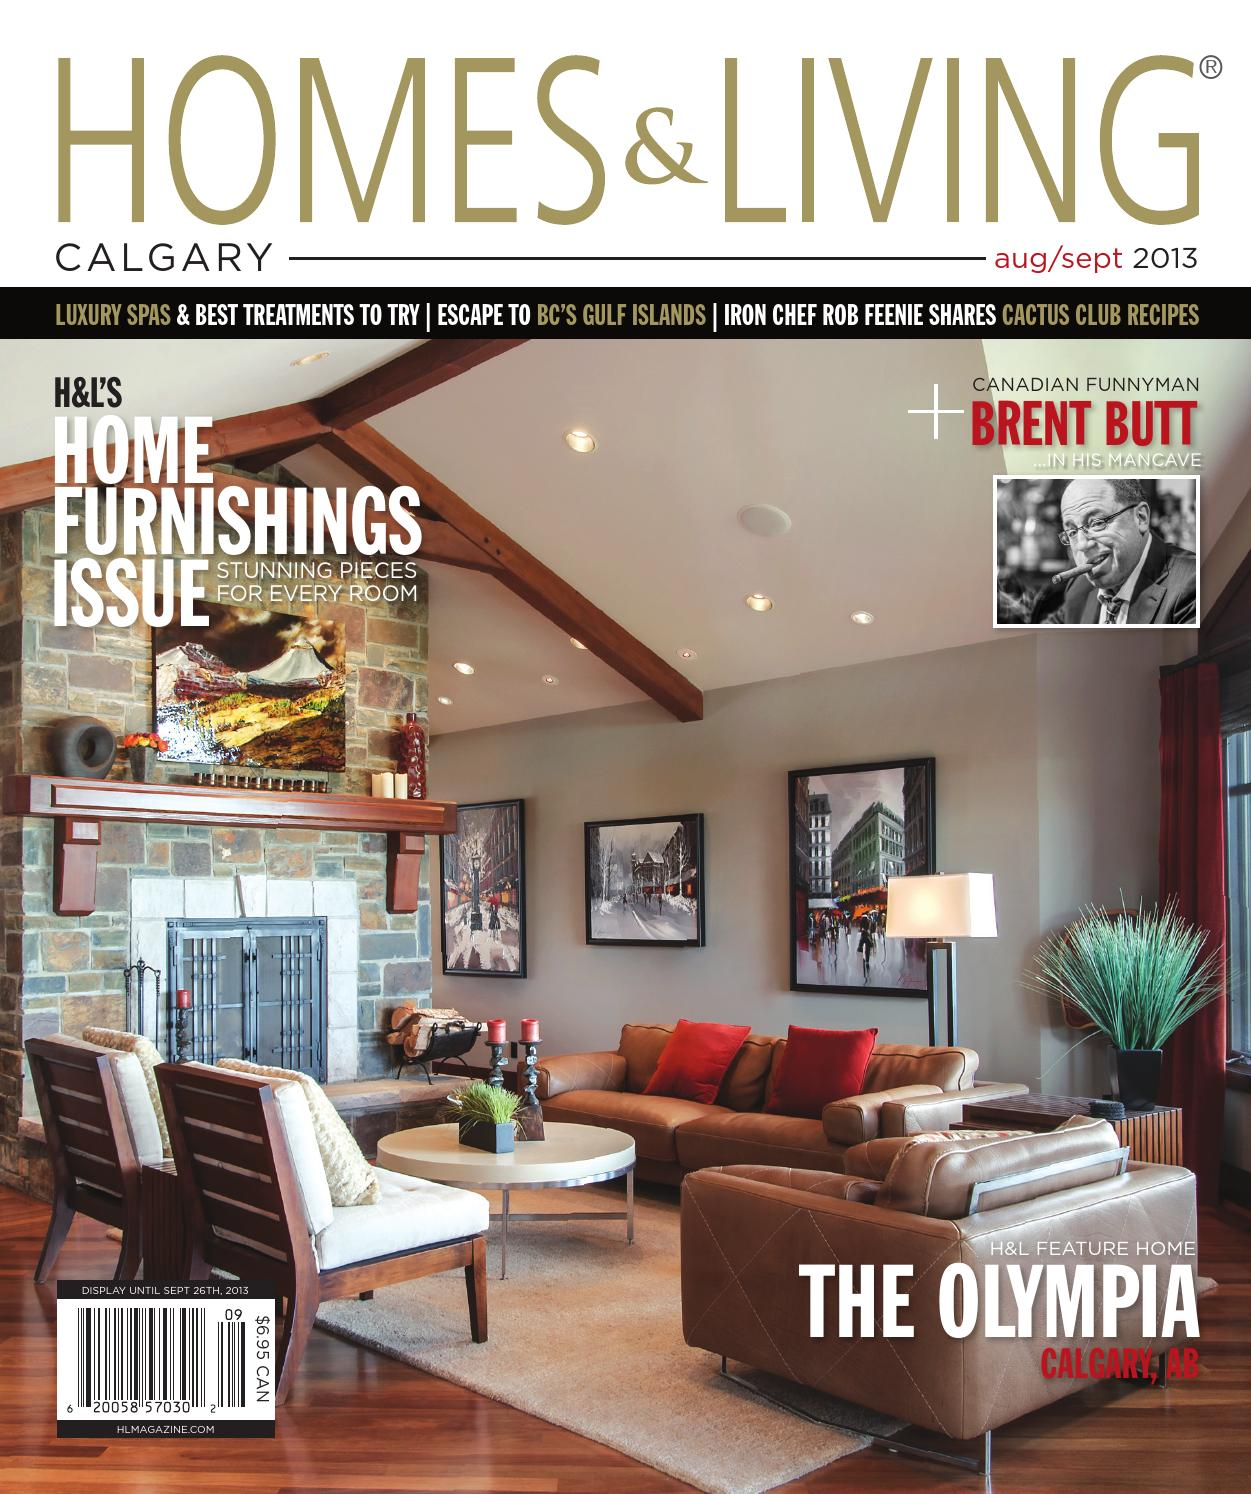 homes living calgary aug sept 2013 issue by homes living magazine h l magazine issuu. Black Bedroom Furniture Sets. Home Design Ideas